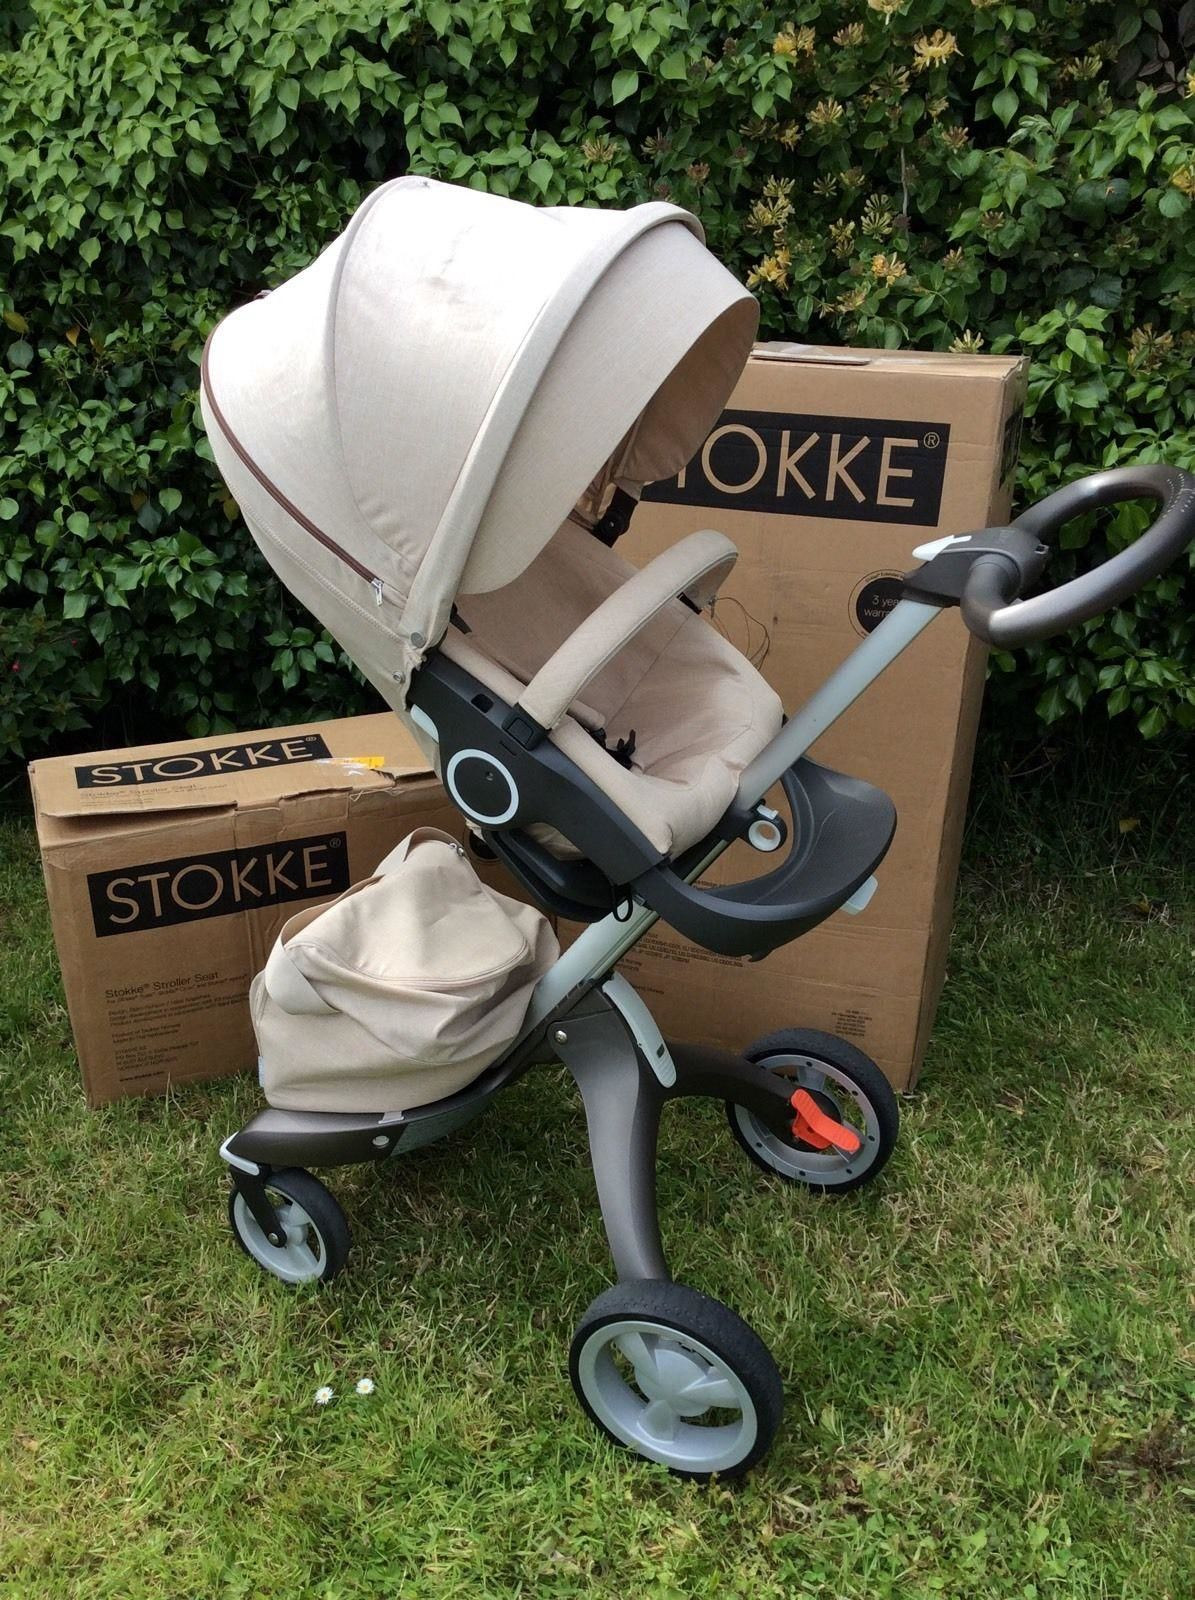 3 IN 1 STOKKE XPLORY V4 WITH WINTER, SUMMER KITS & STOKKE MYCARRIER